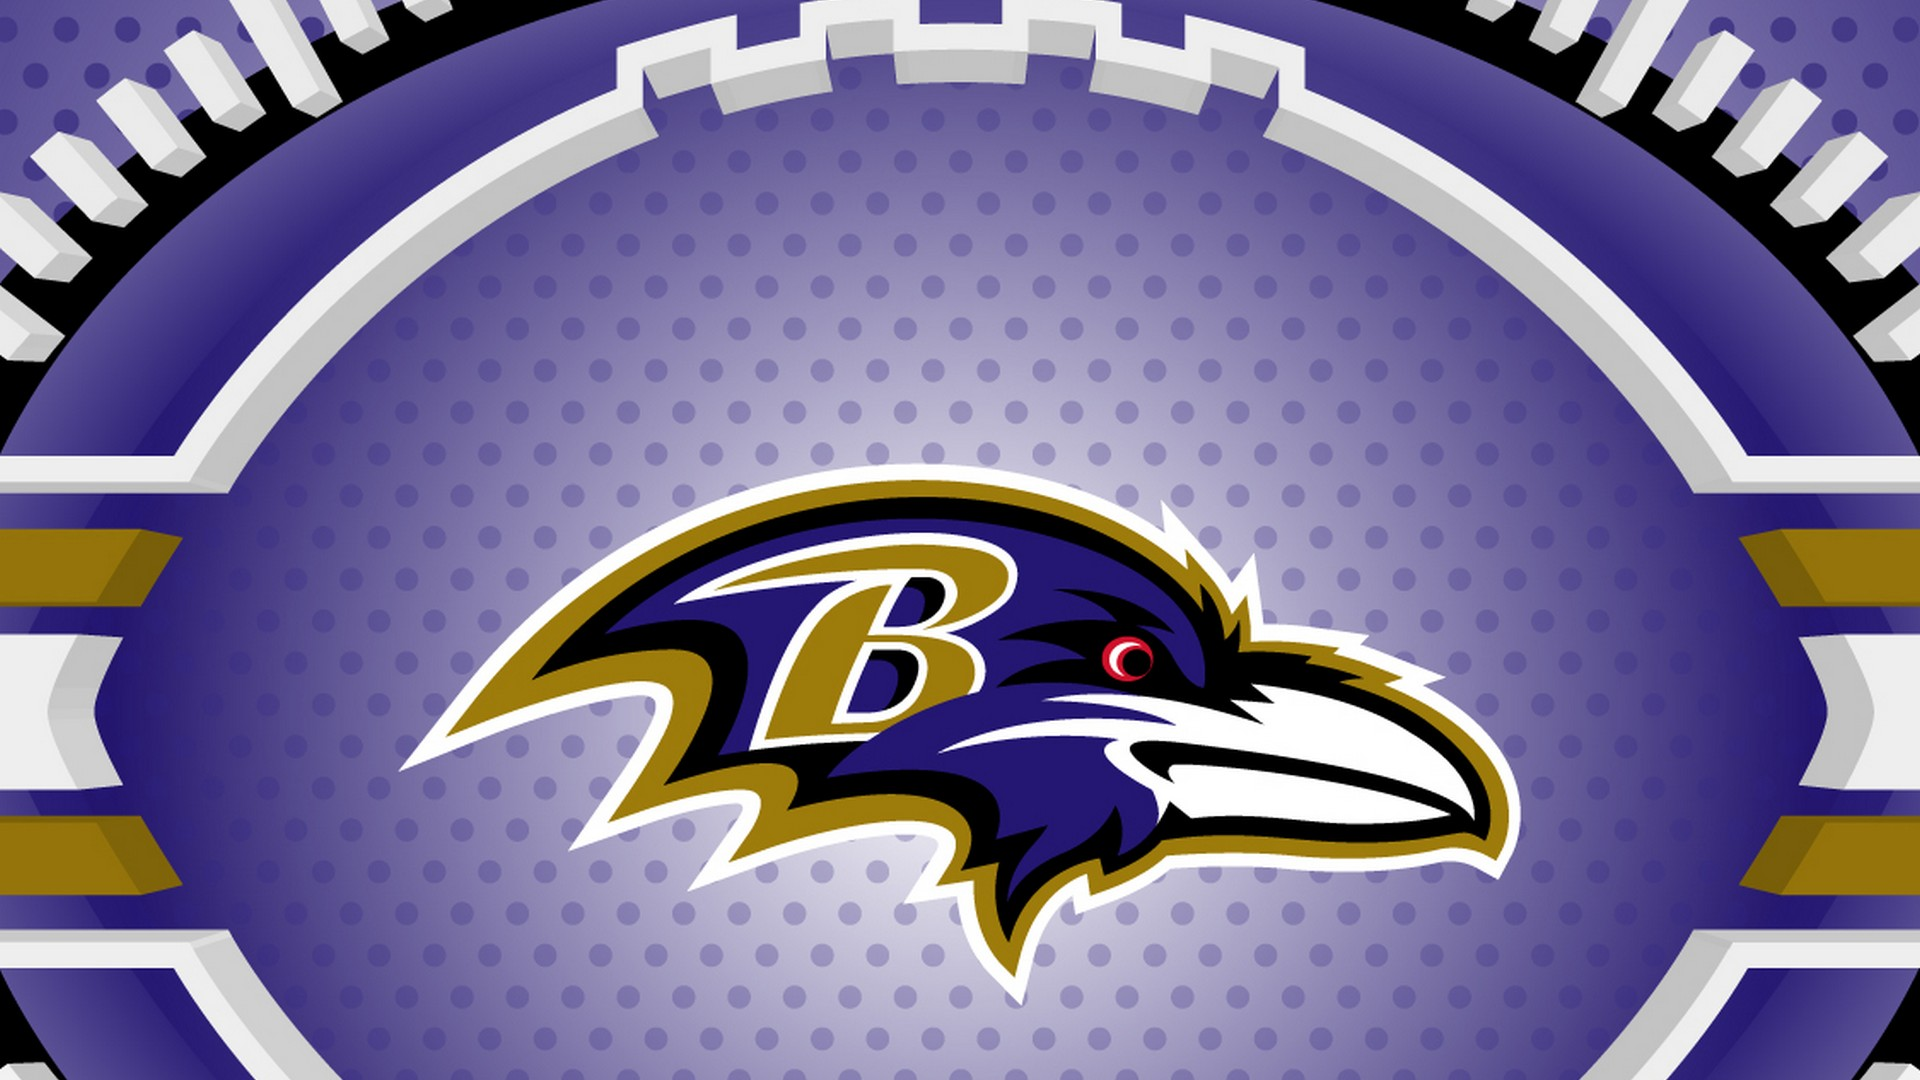 Baltimore Ravens Wallpaper For Mac Backgrounds 2019 NFL Football 1920x1080